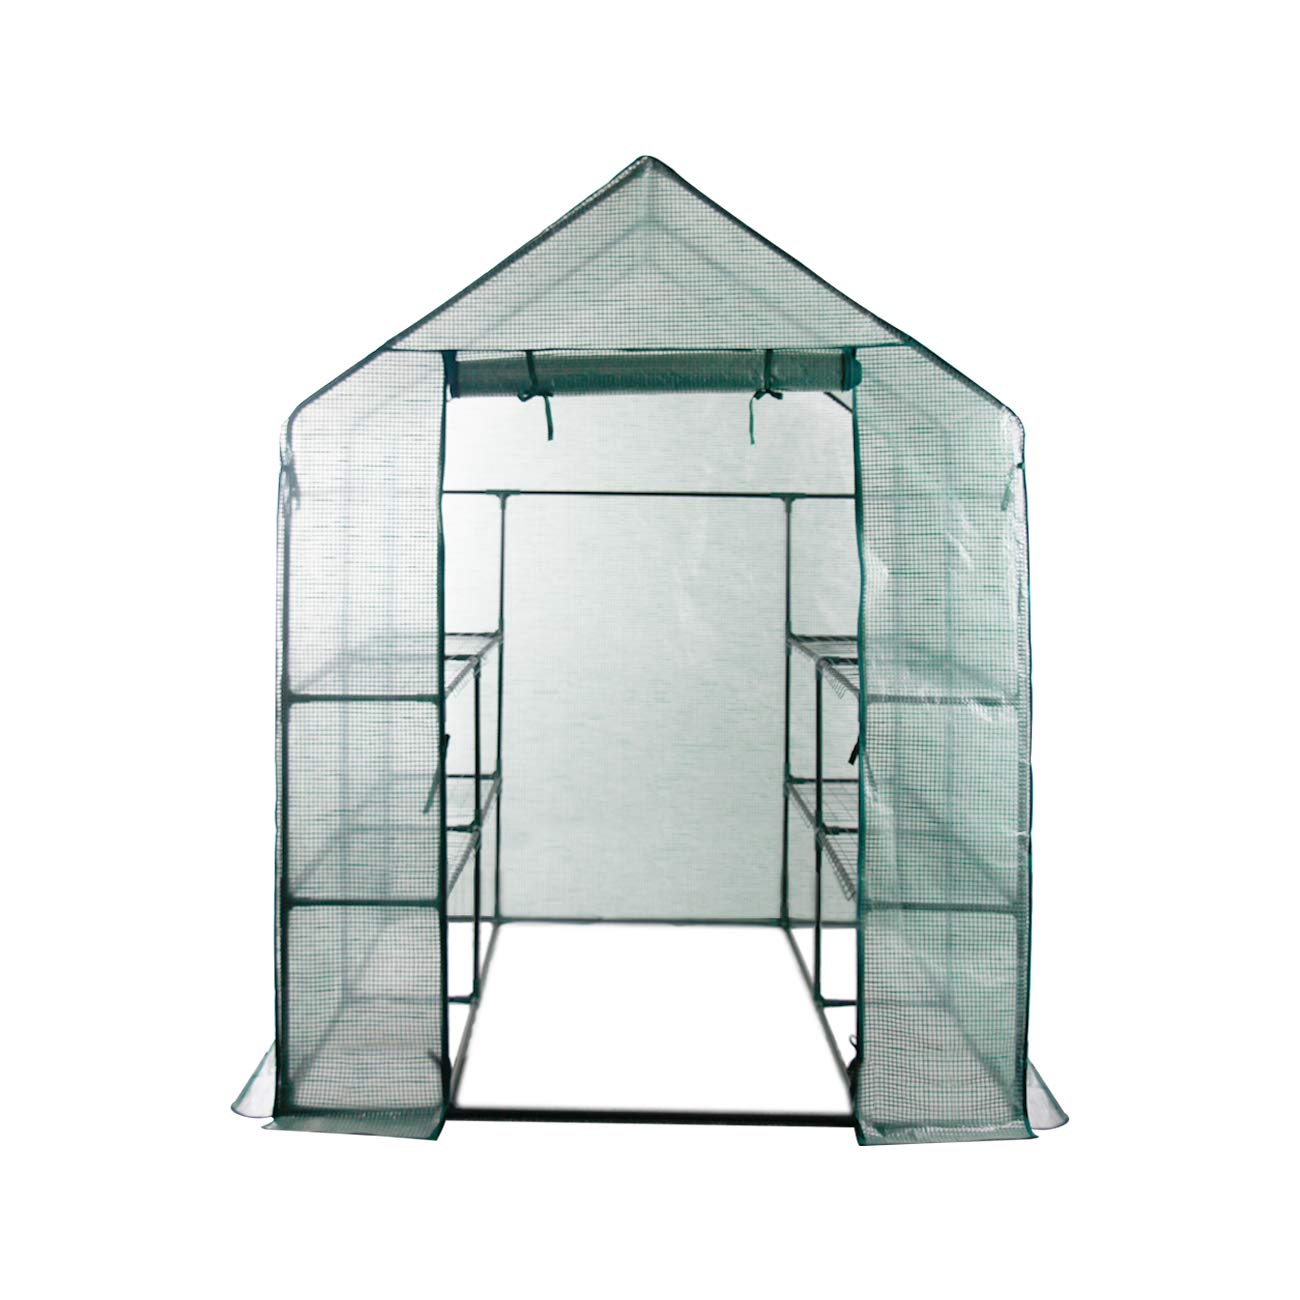 AODAILIHB Reinforced PE Net 6 Layers 8 Shelves Greenhouse Suitable for Lawn and Garden Steel Structure Assembly, 8 Fixed Buttons 4 Floor Fasteners, H x L x W:76.77 x 56.29 x 56.29 inch (02) by AODAILIHB (Image #1)